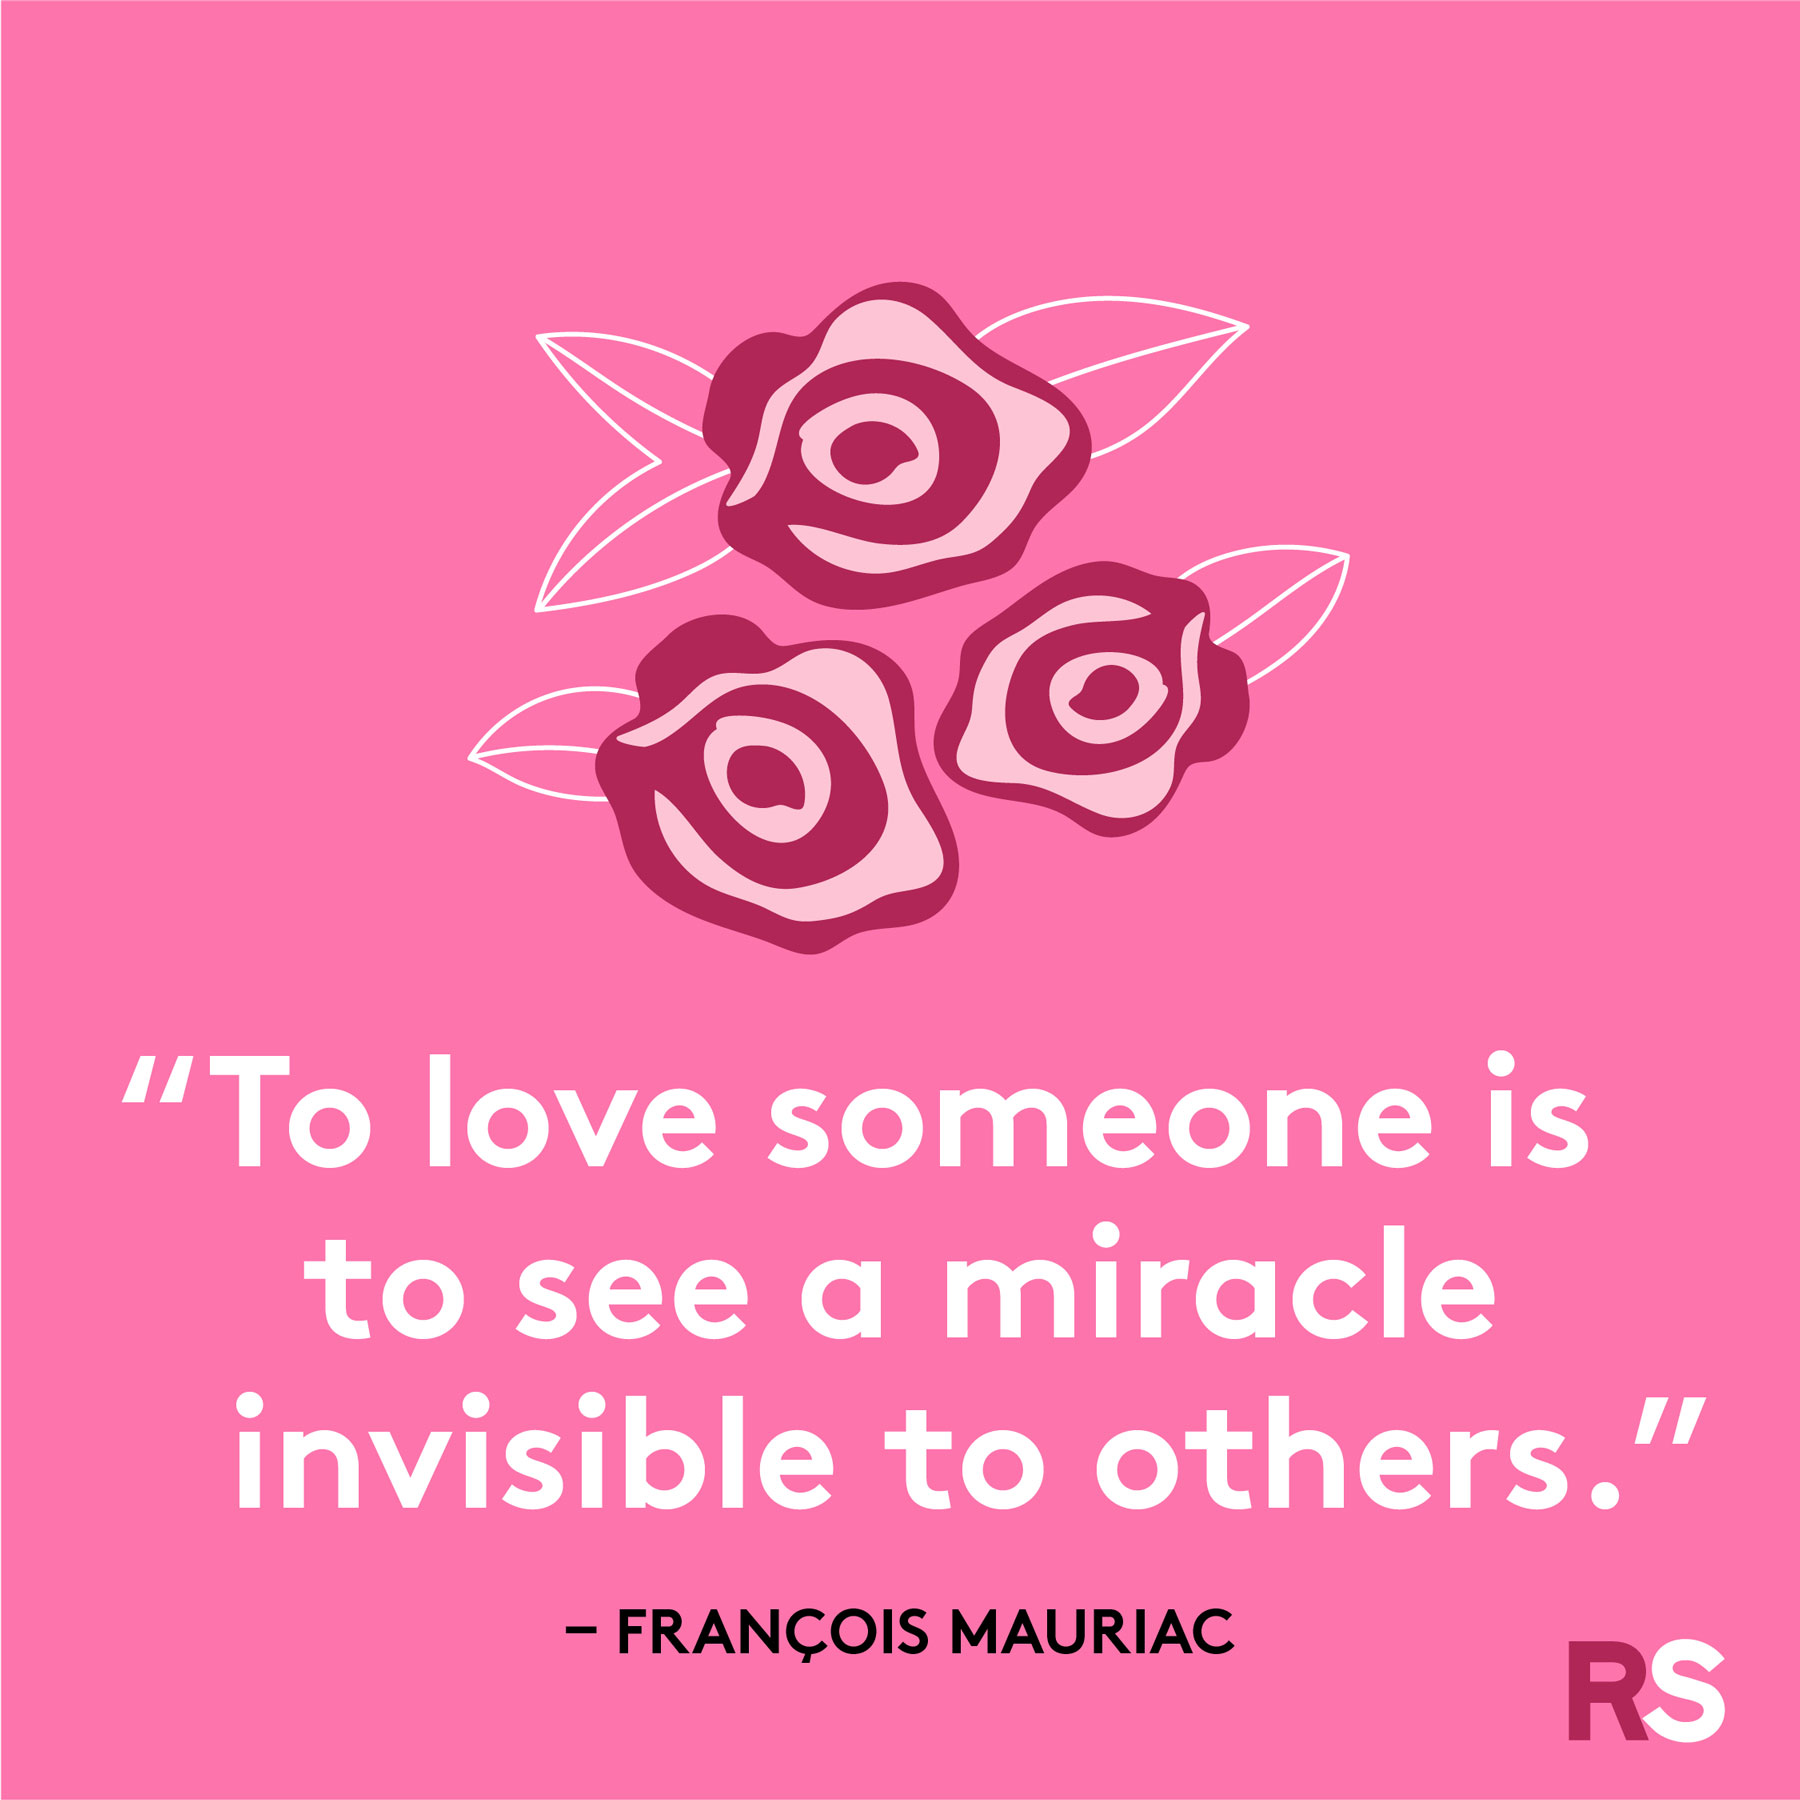 """To love someone is to see a miracle invisible to others."""